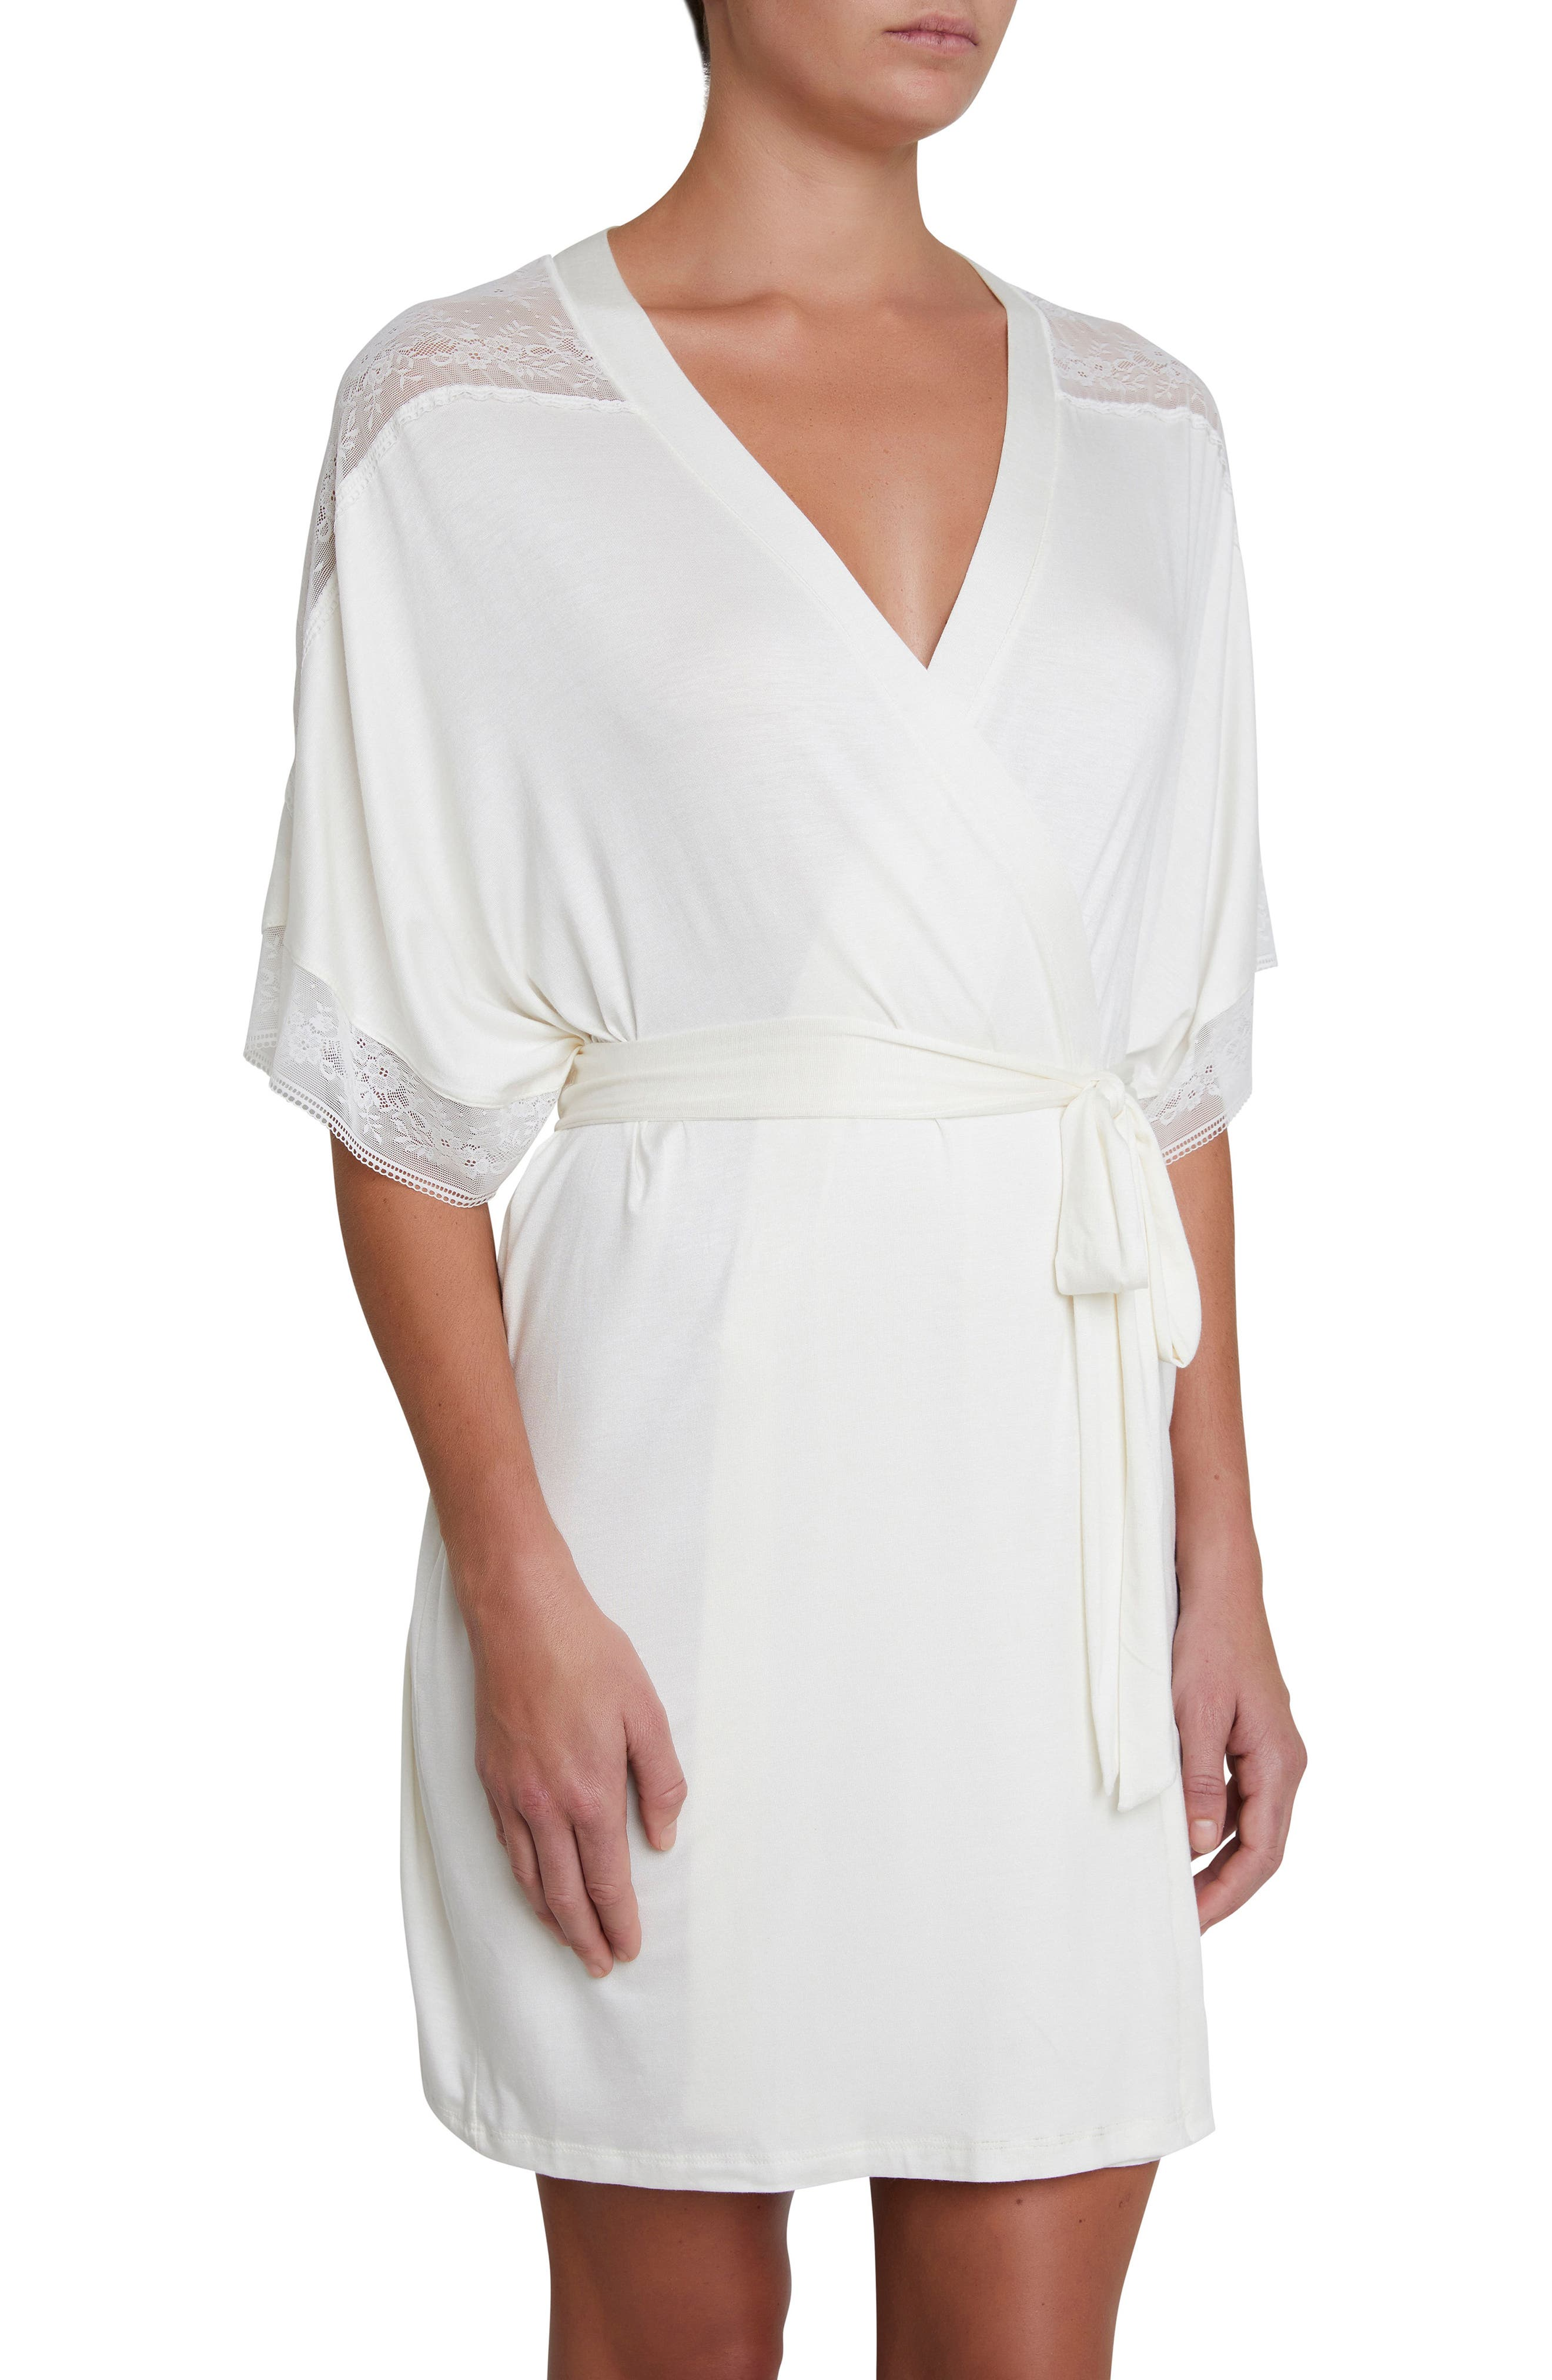 Adora the Date Short Robe,                         Main,                         color, IVORY